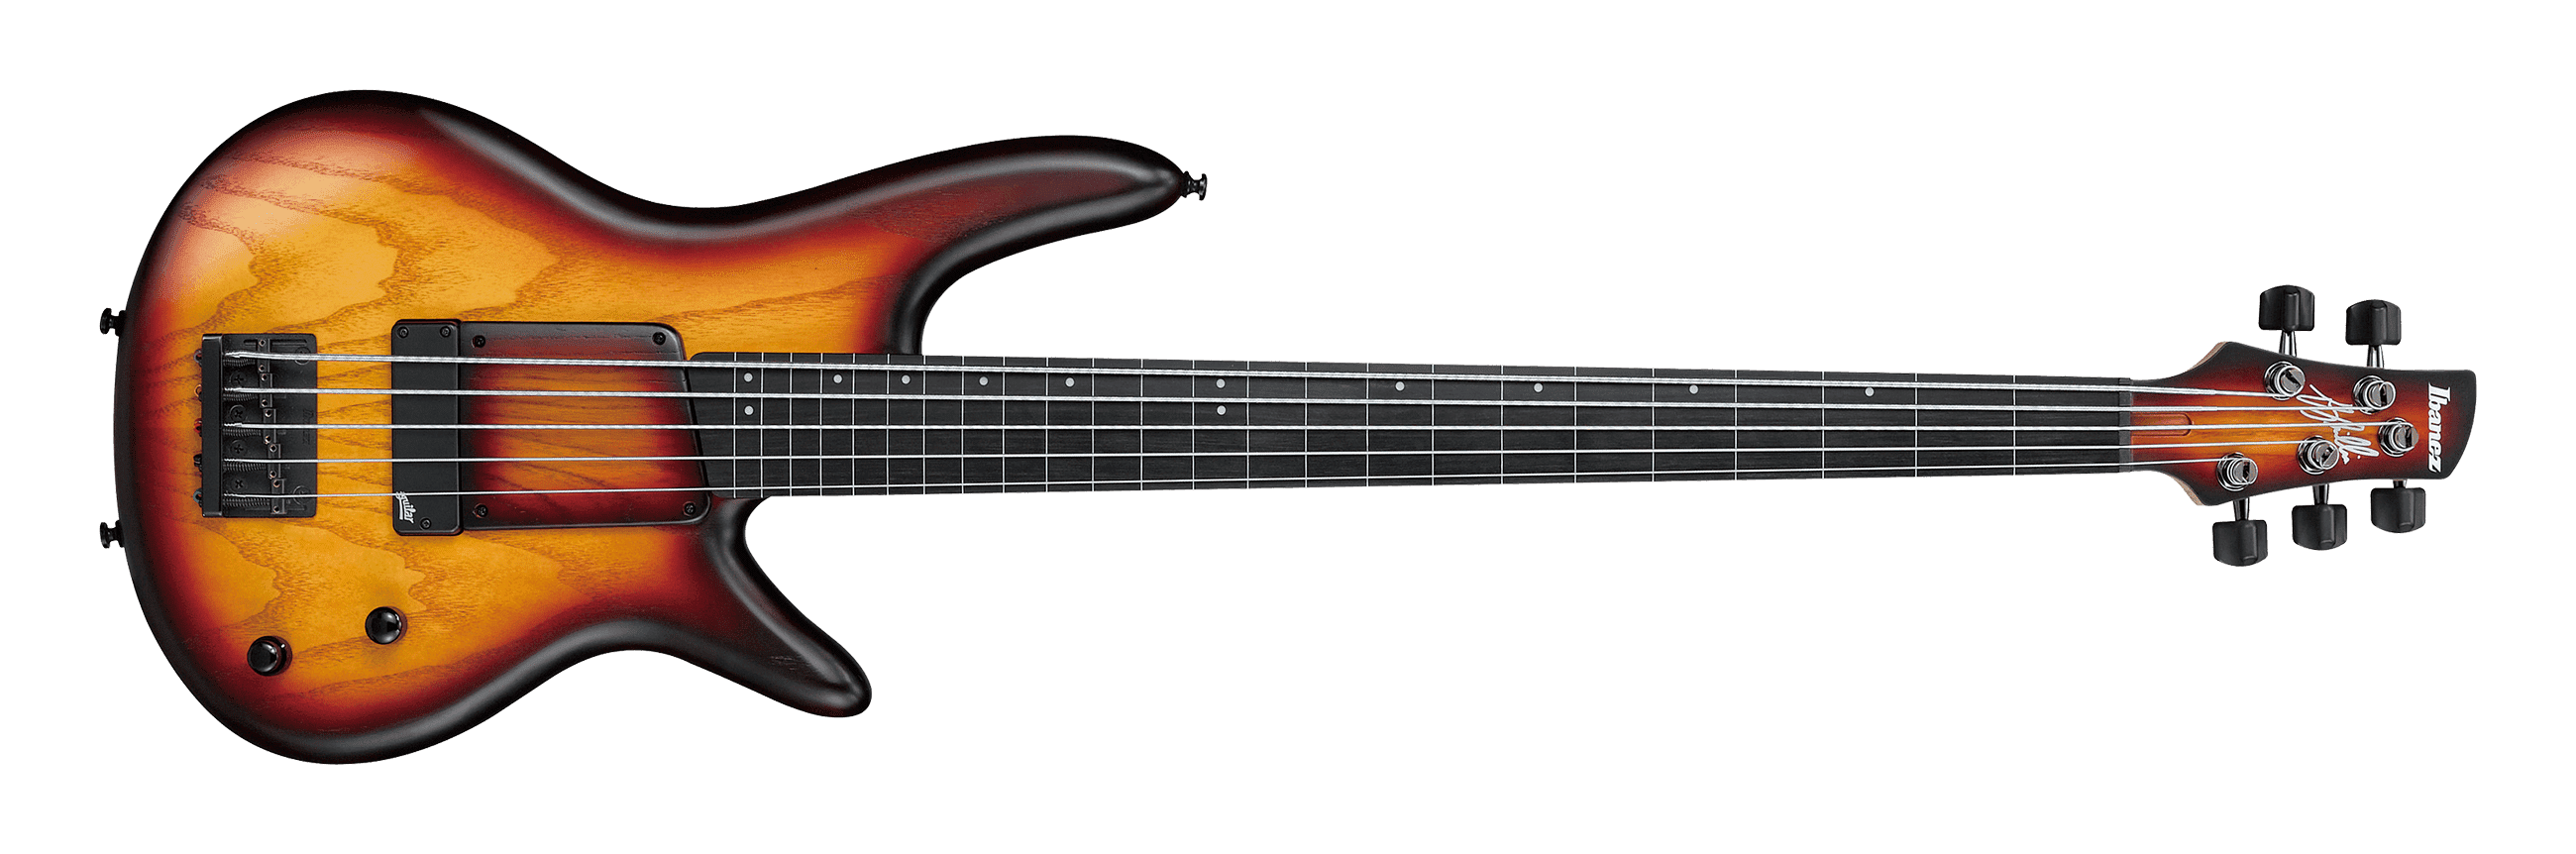 Ibanez GWB20TH-TQF